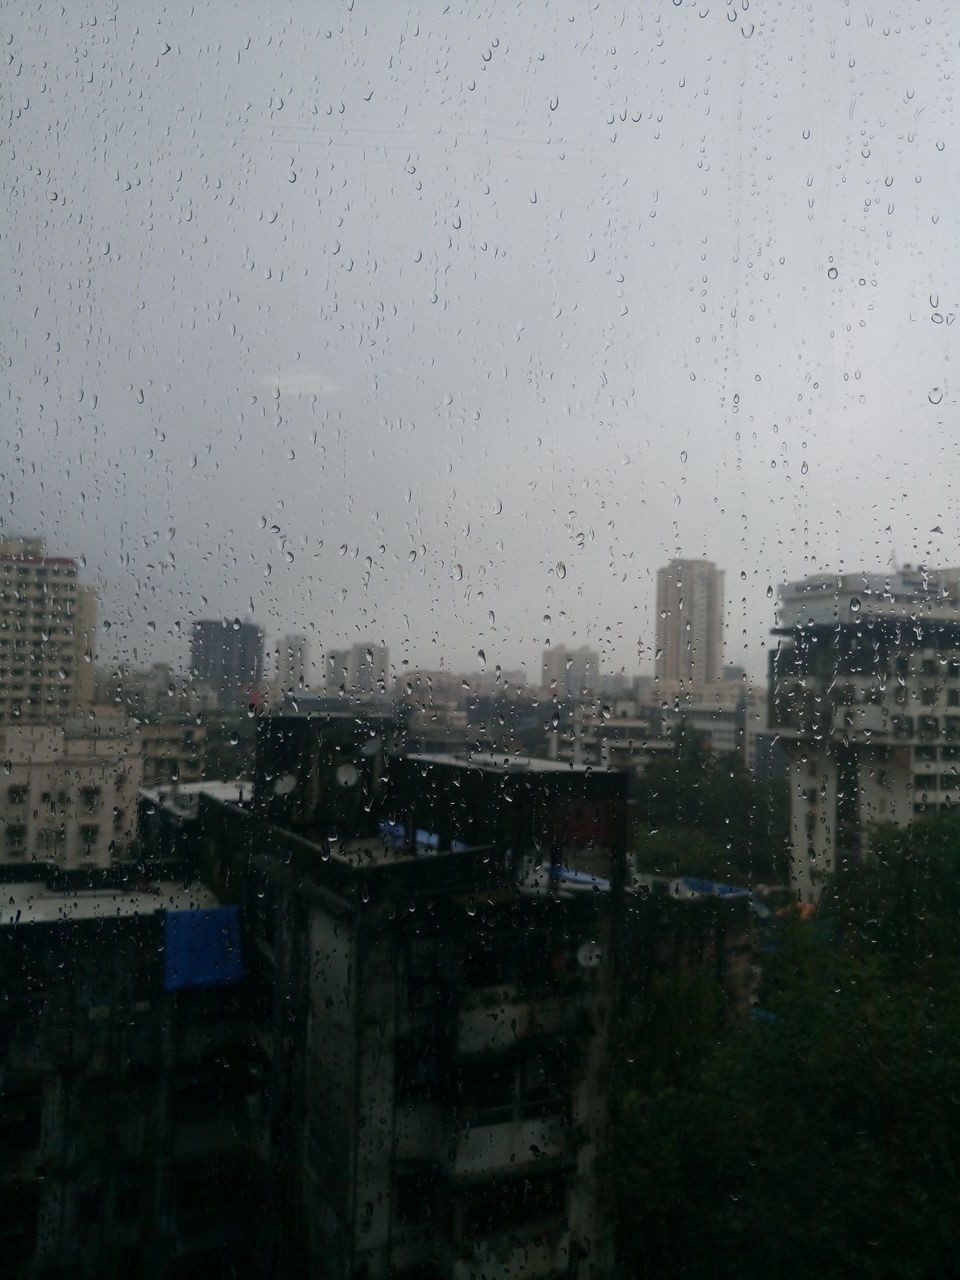 wet, drop, rain, weather, rainy season, raindrop, architecture, window, glass - material, building exterior, built structure, no people, water, city, sky, day, skyscraper, outdoors, cityscape, clear sky, nature